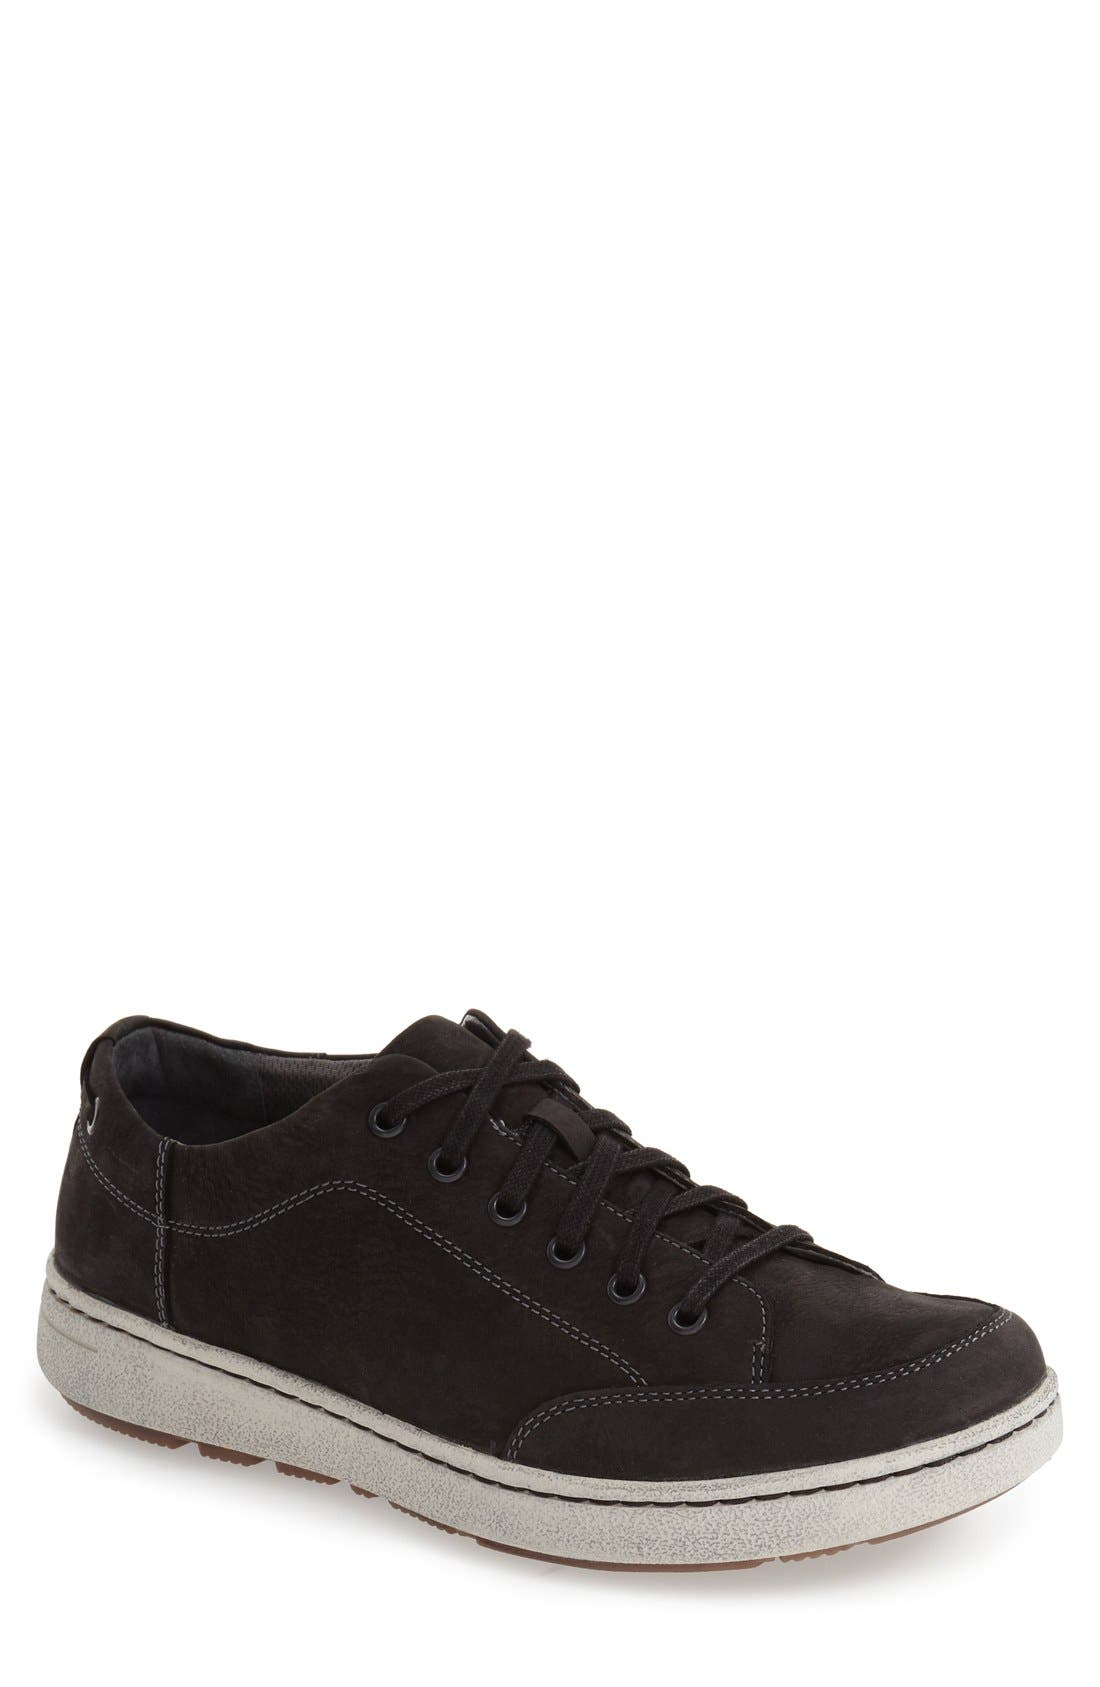 'Vaughn' Water-Resistant Sneaker,                             Main thumbnail 1, color,                             Black Milled Nubuck Leather